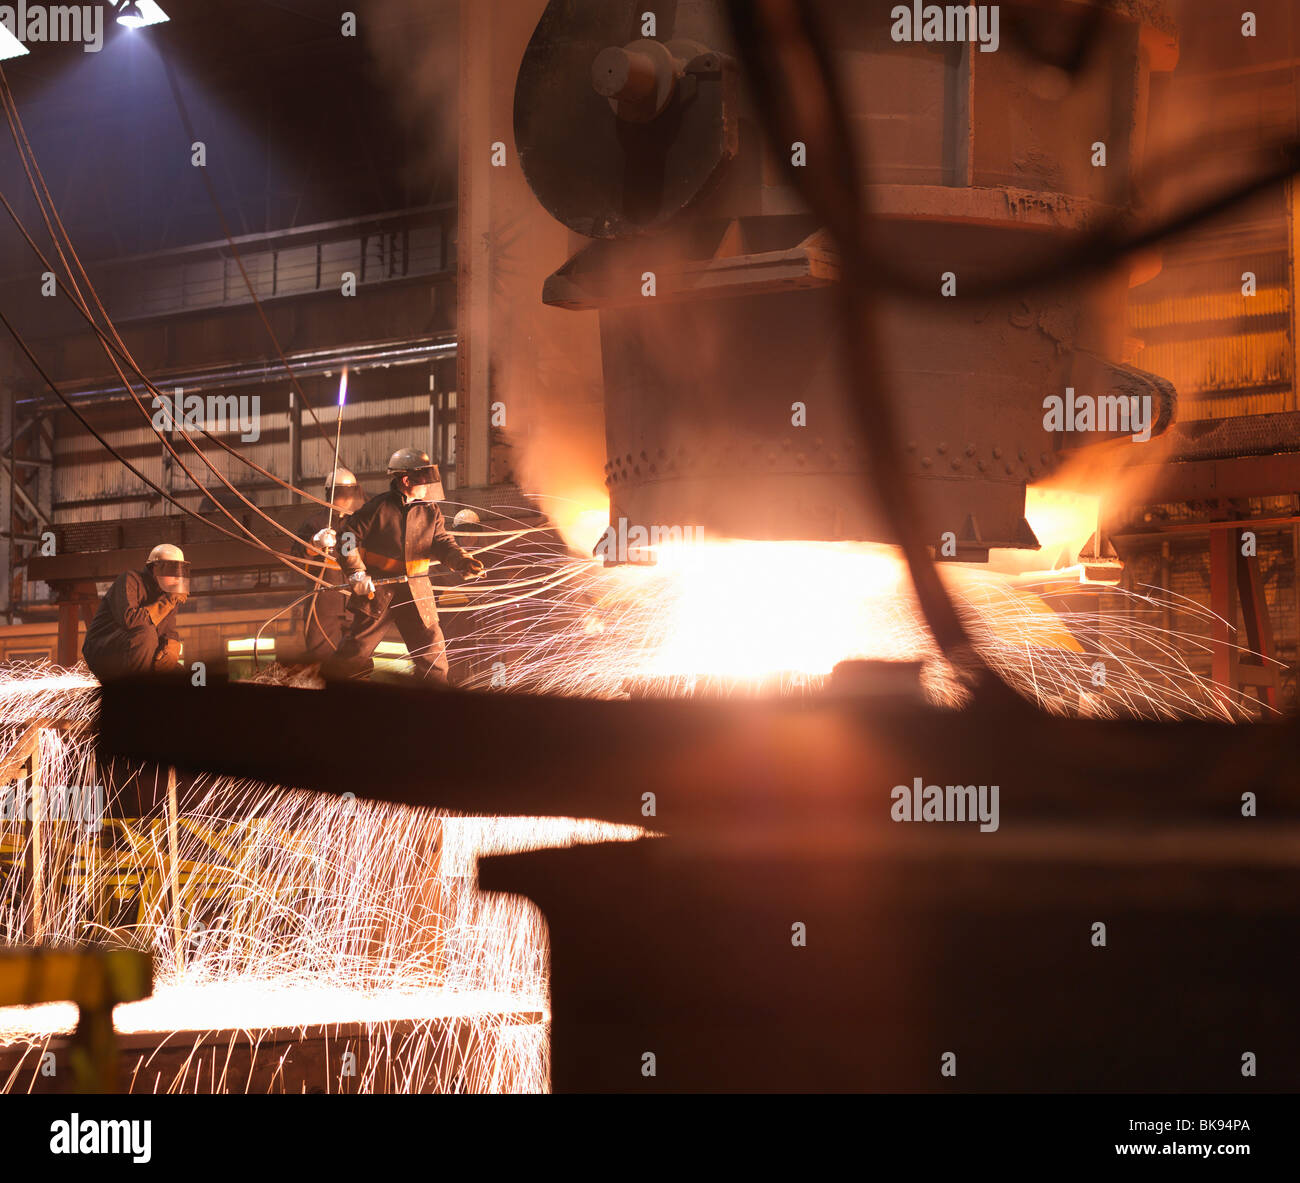 Workers Pouring Molten Steel In Plant Stock Photo